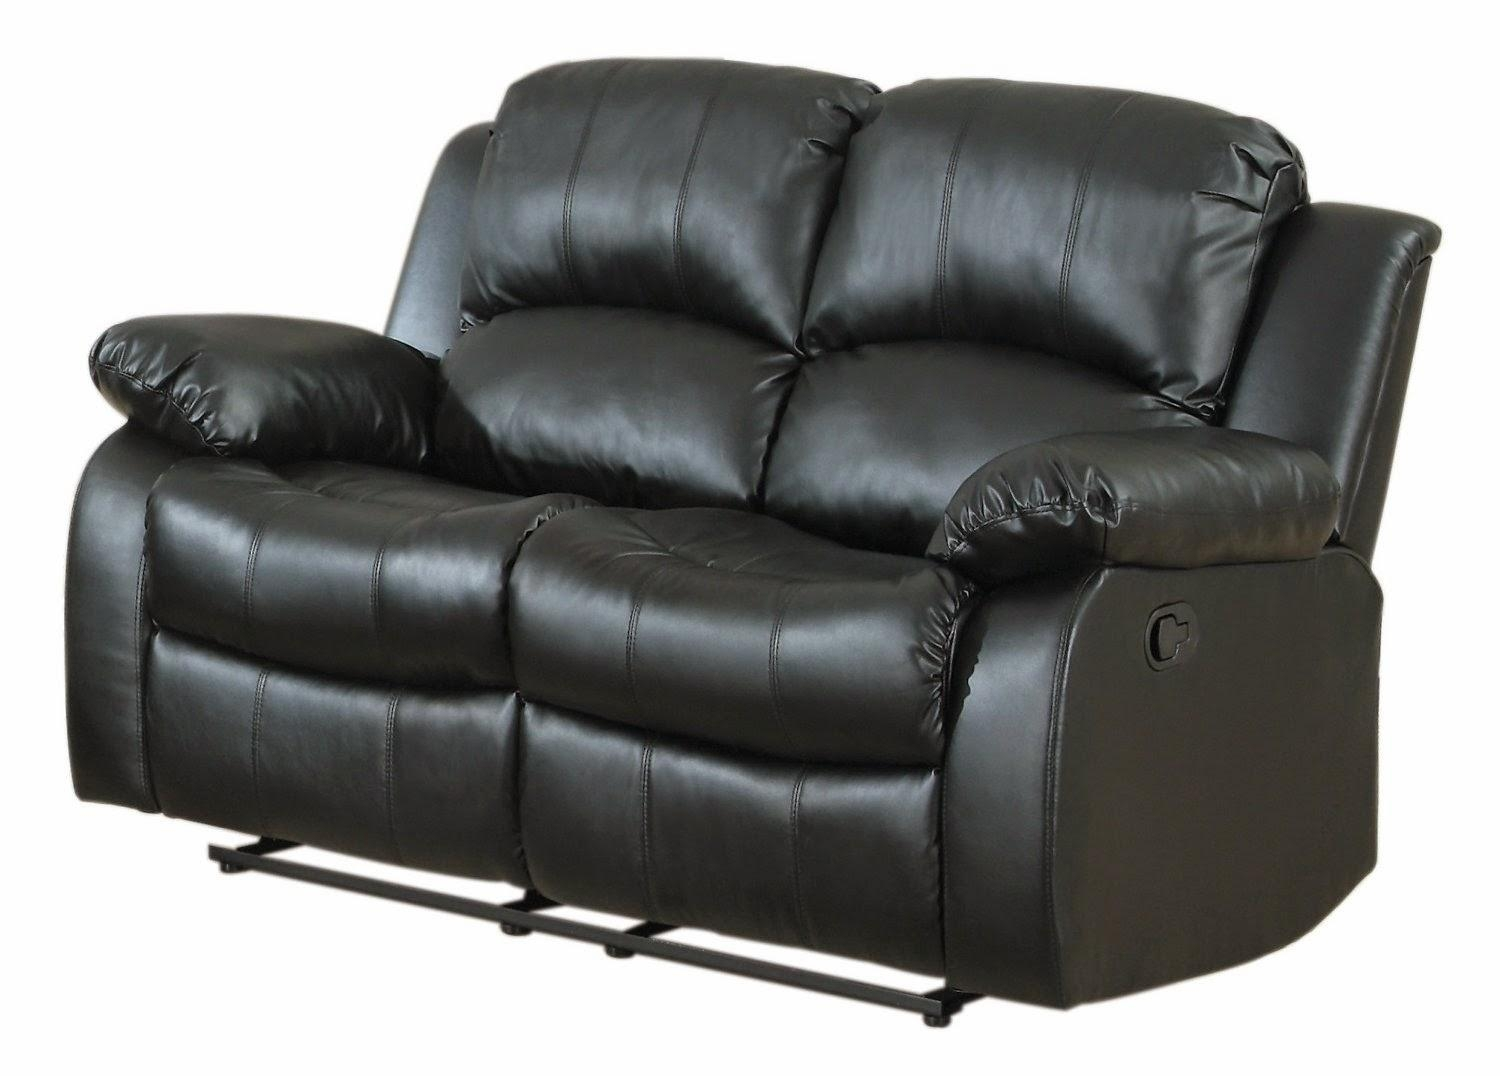 berkline recliner sofa what can i use to clean a leather 20 best collection of reclining sofas ideas